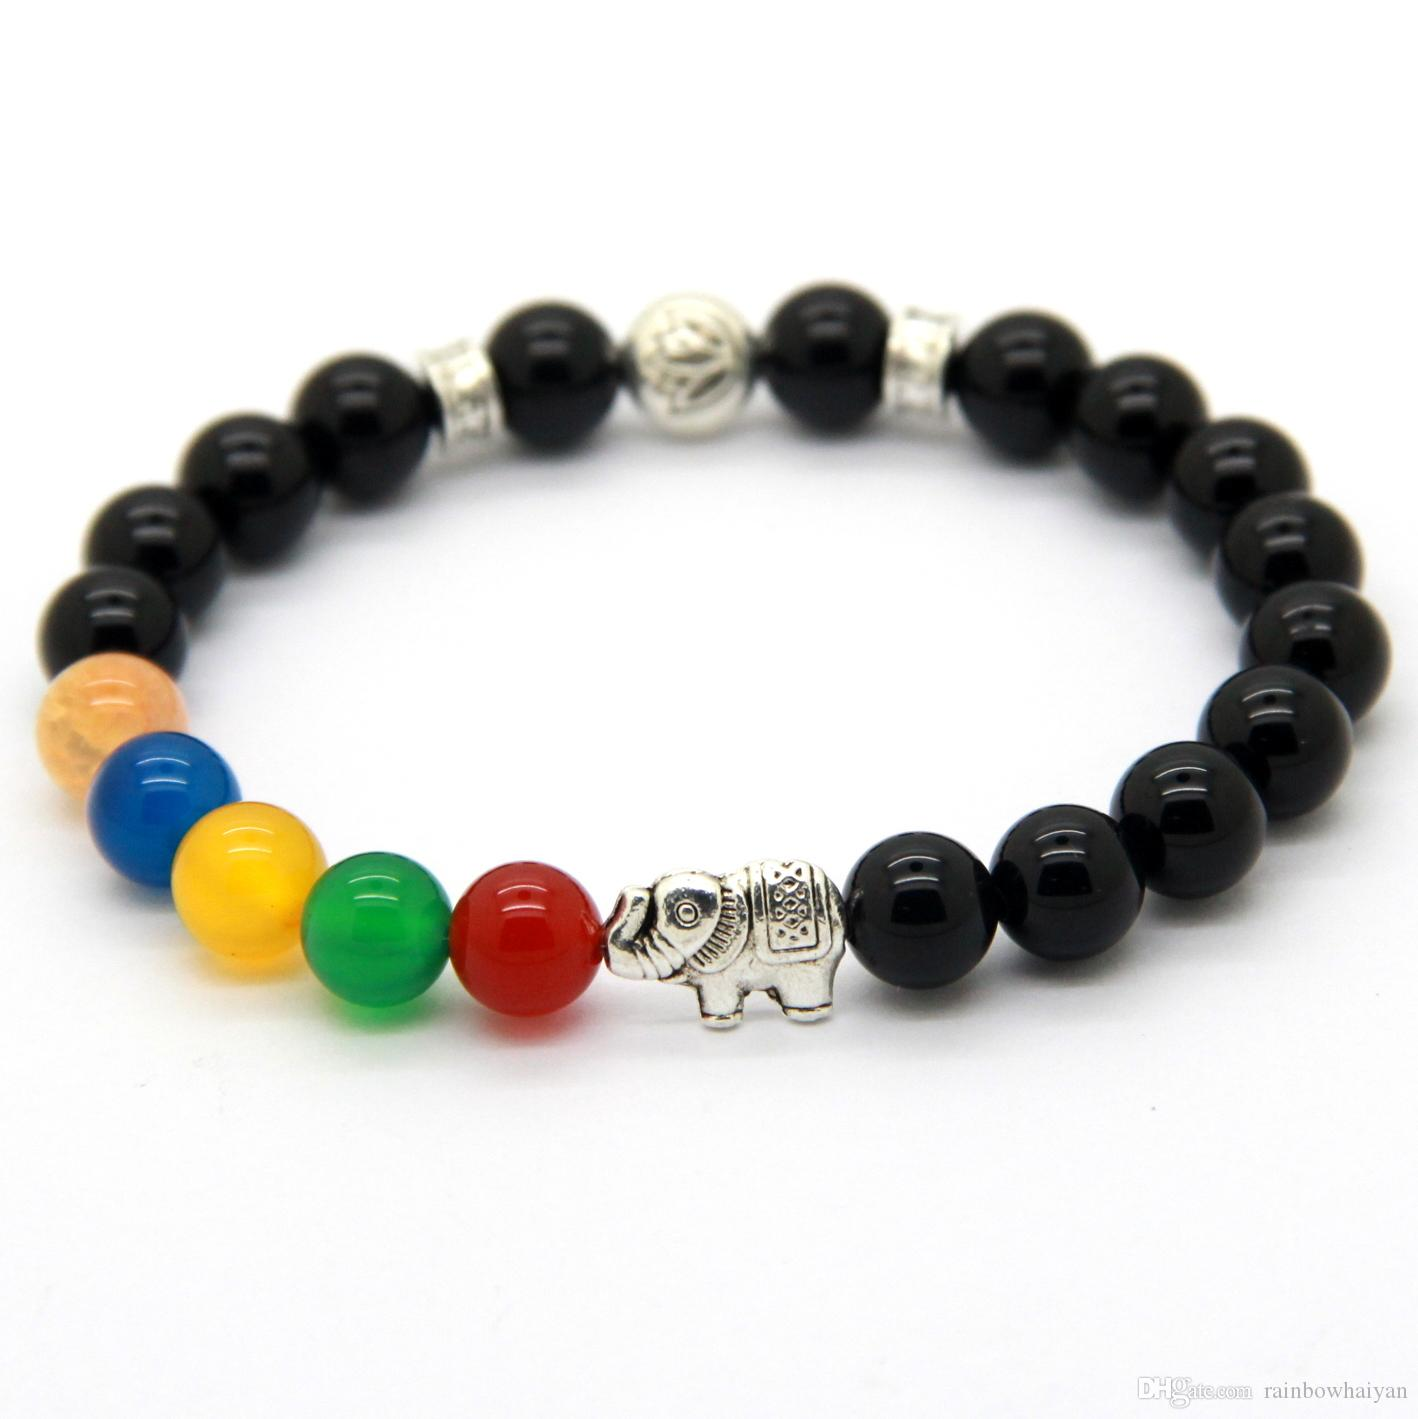 quartz good listing bracelet meditation fullxfull luck with lemon il